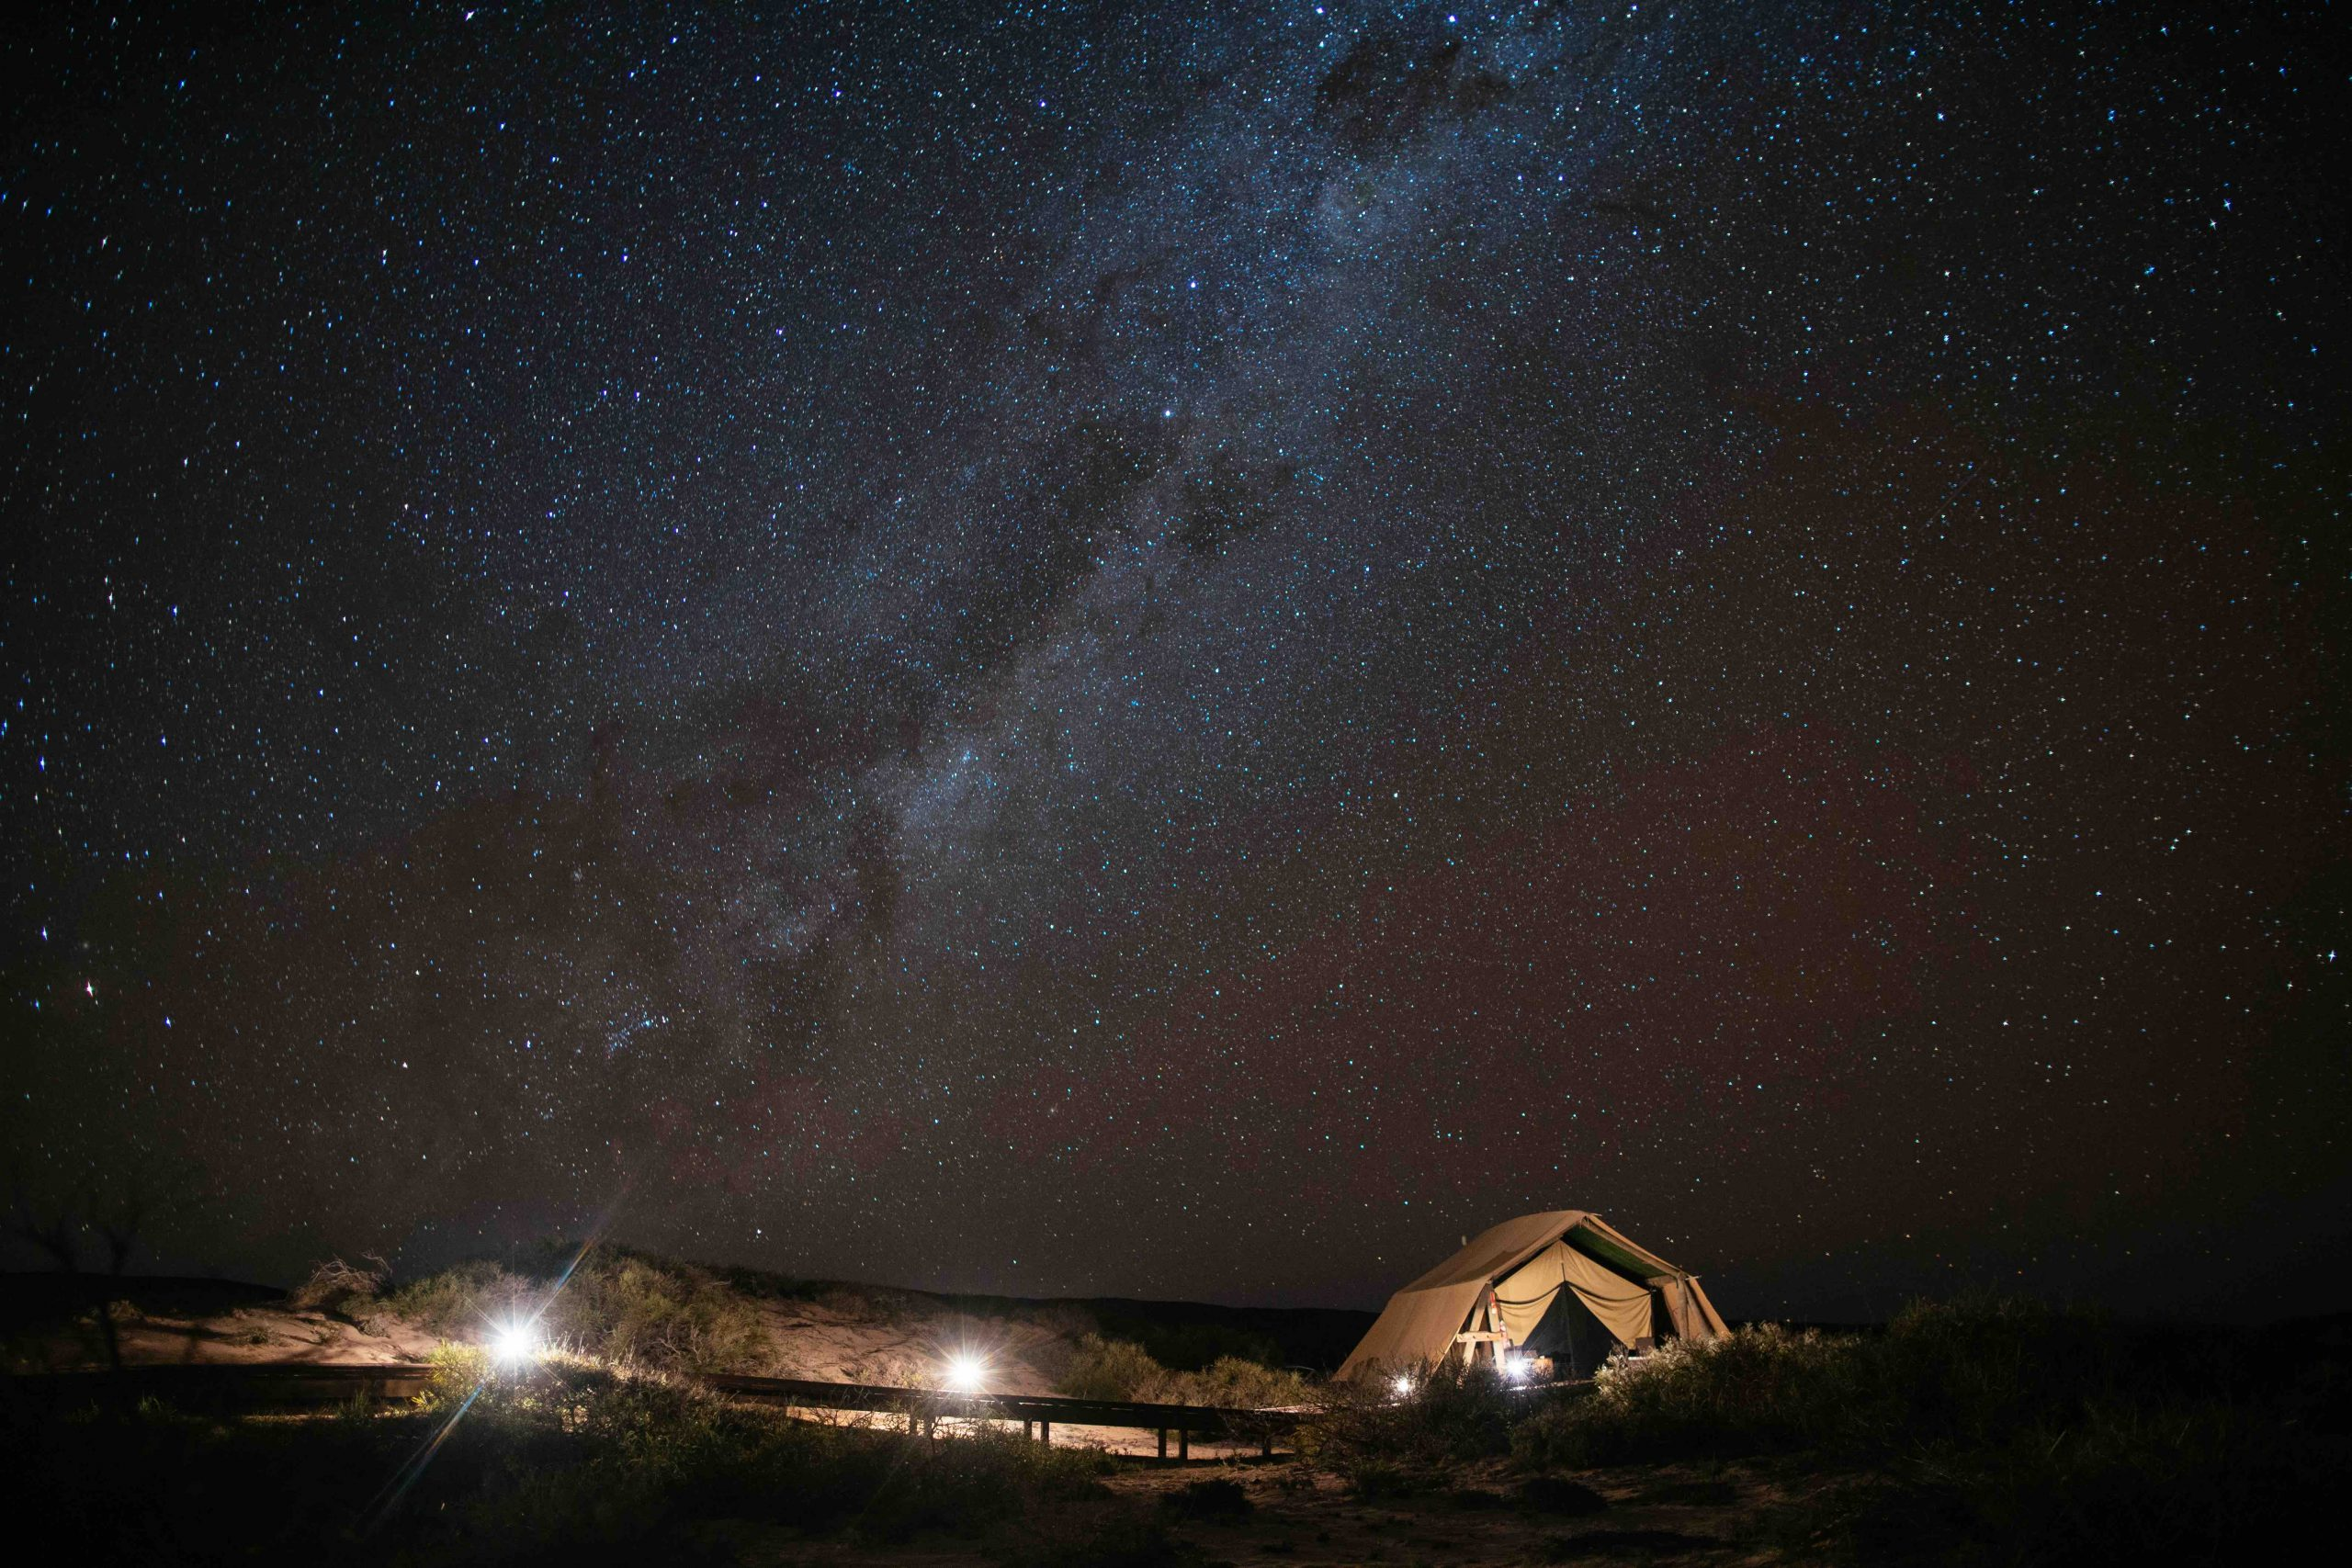 Sal Salis Ningaloo Reef Tent at night Astro Milky Way